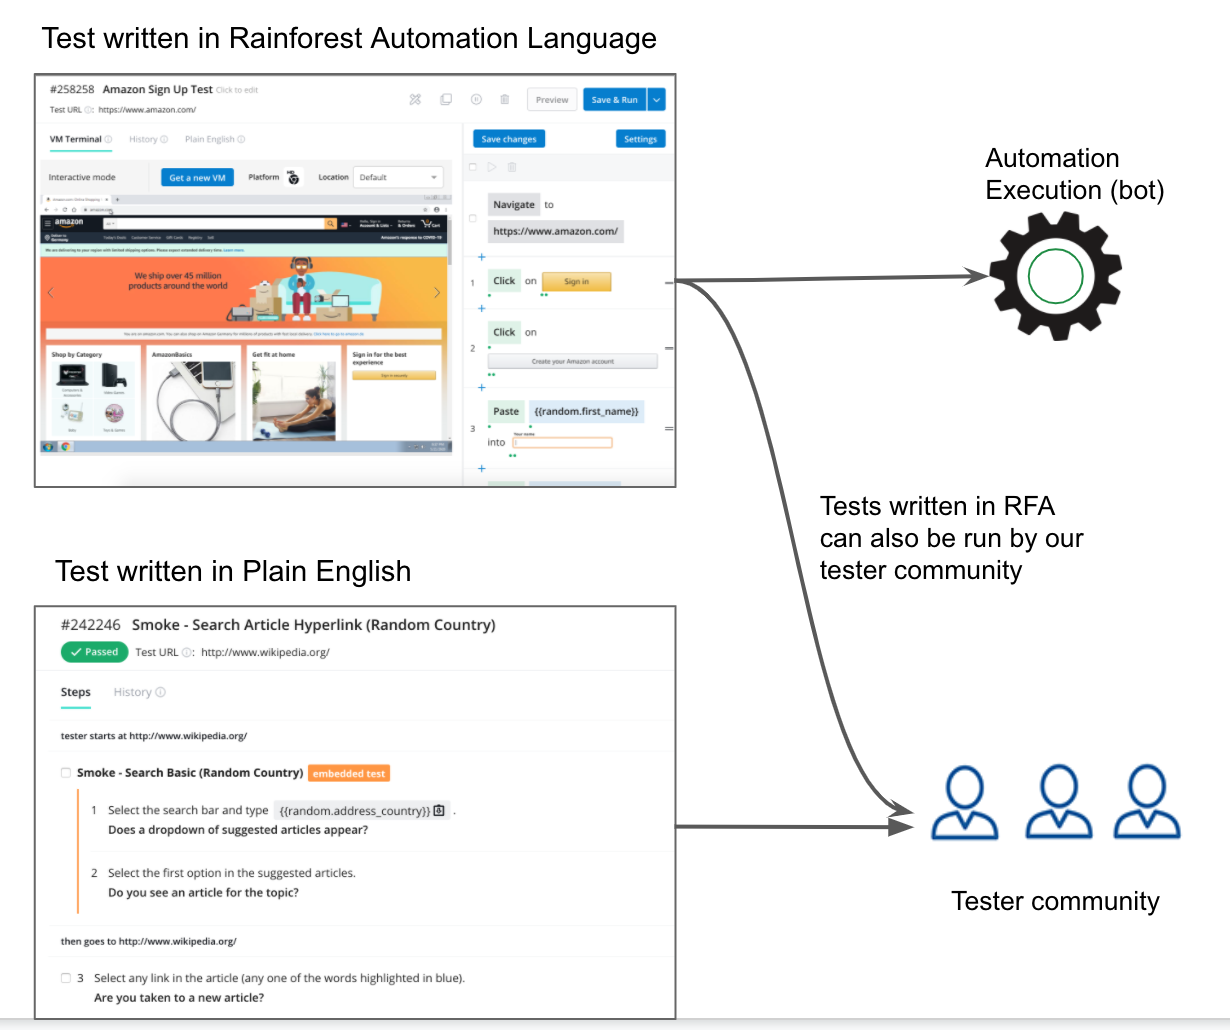 Tests written in Rainforest Automation can be run by Automation or by our Tester Community. Tests written in Plain English can only be run by our Tester Community.